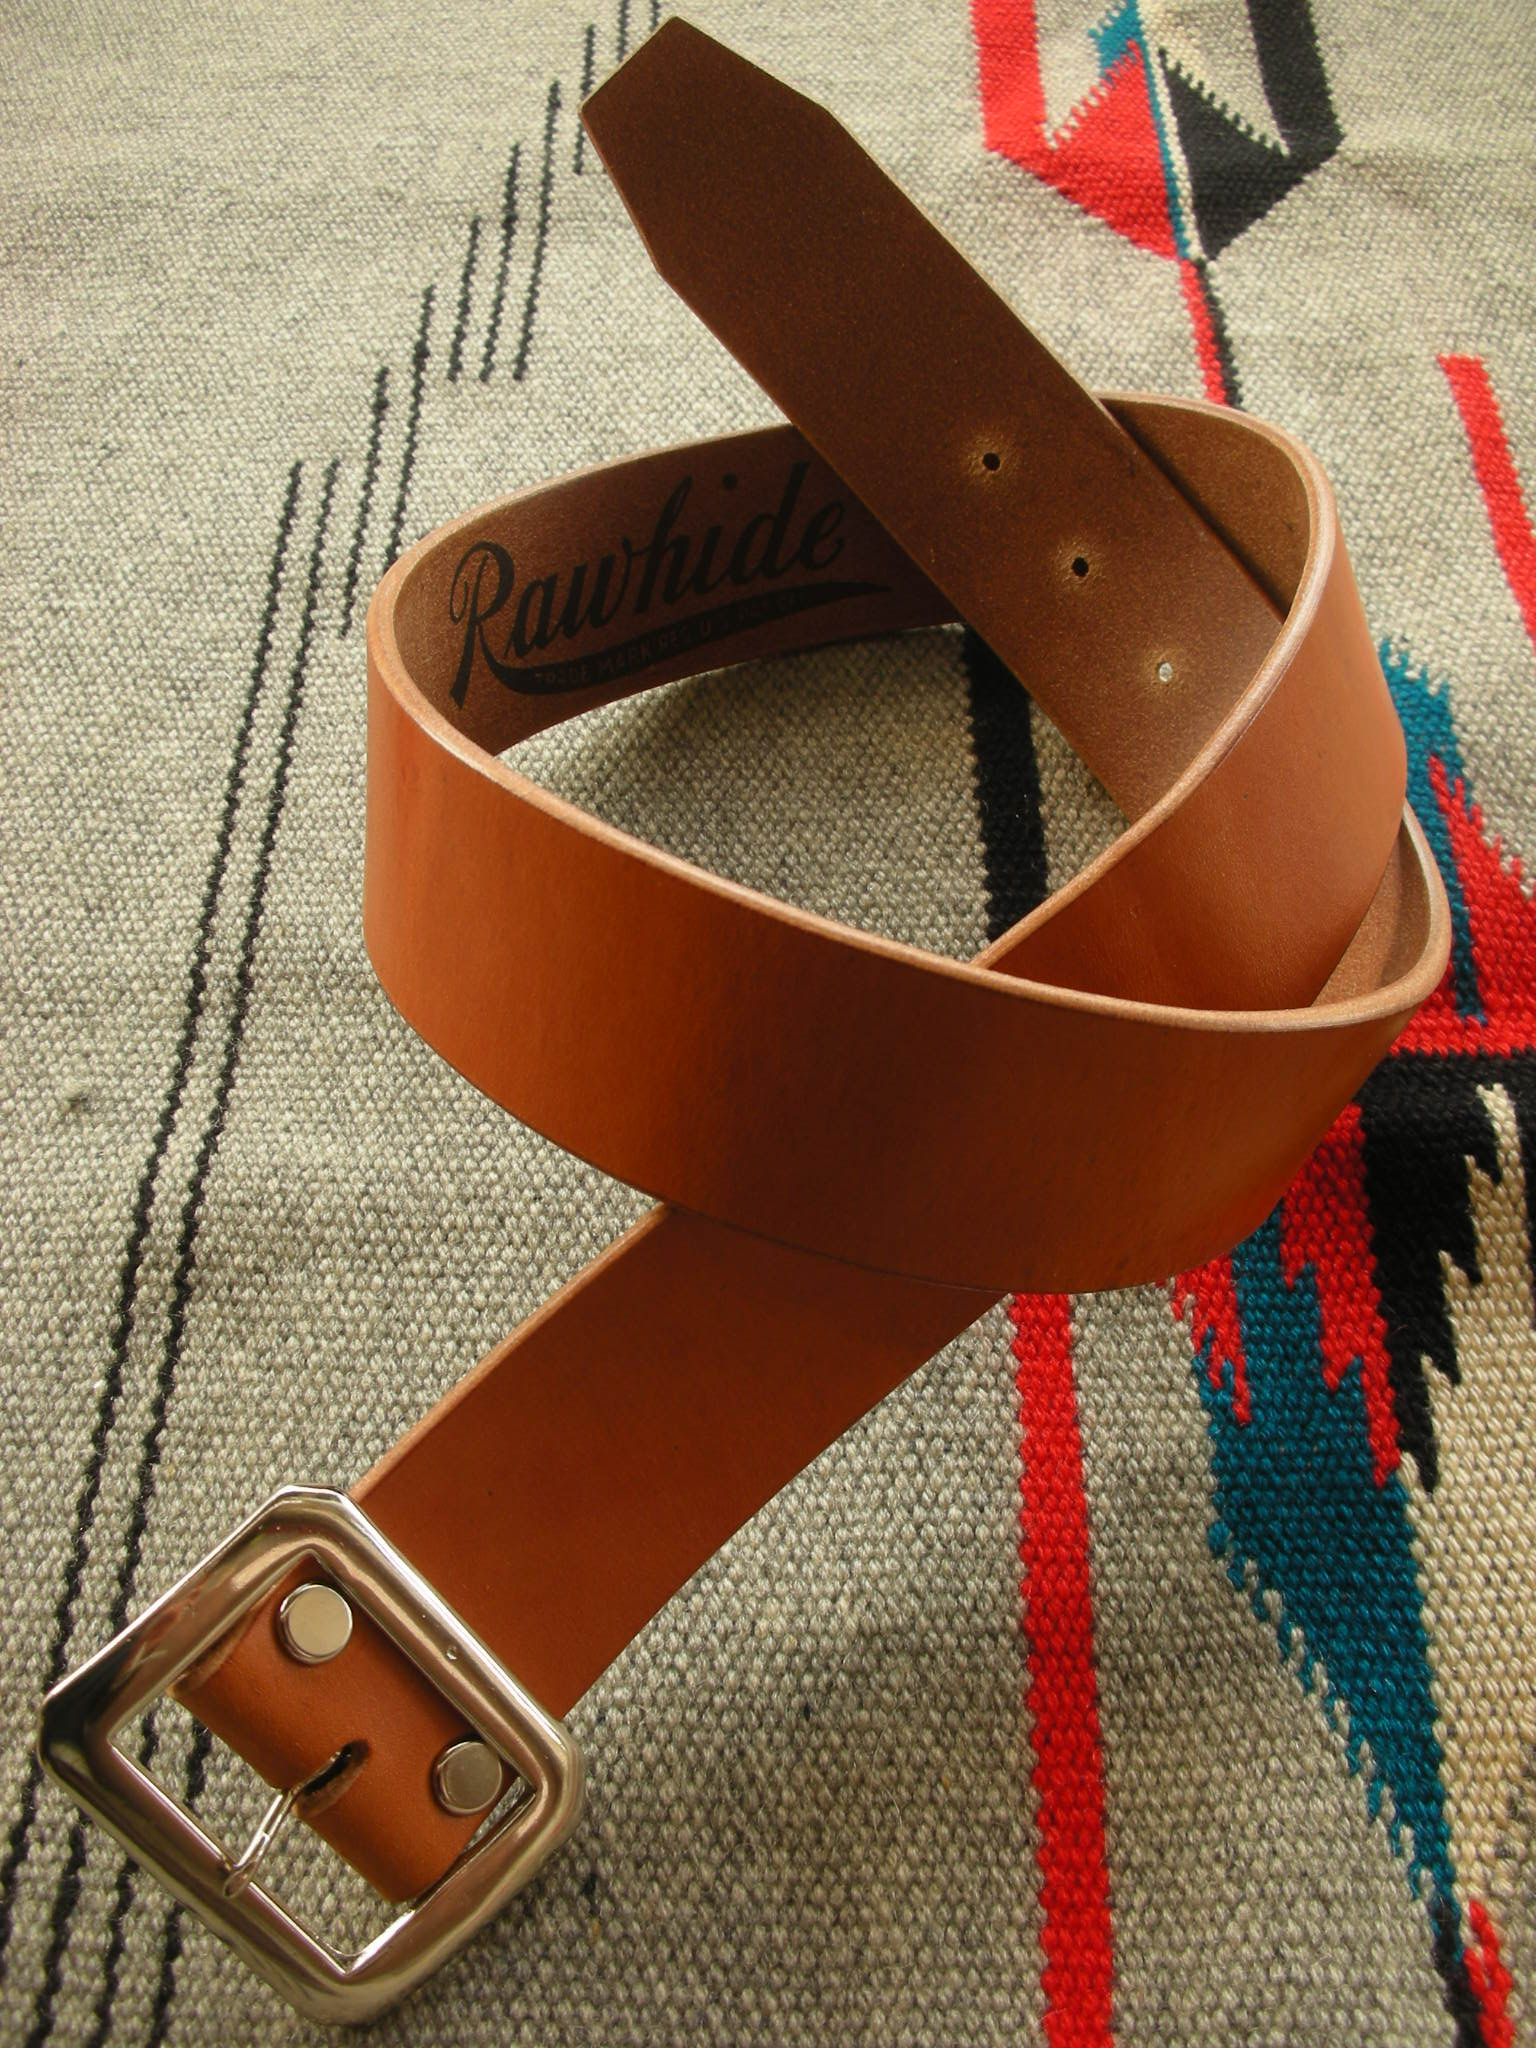 RAWHIDE UK BRIDLE BELTS & WALLETS_c0187684_15582350.jpg